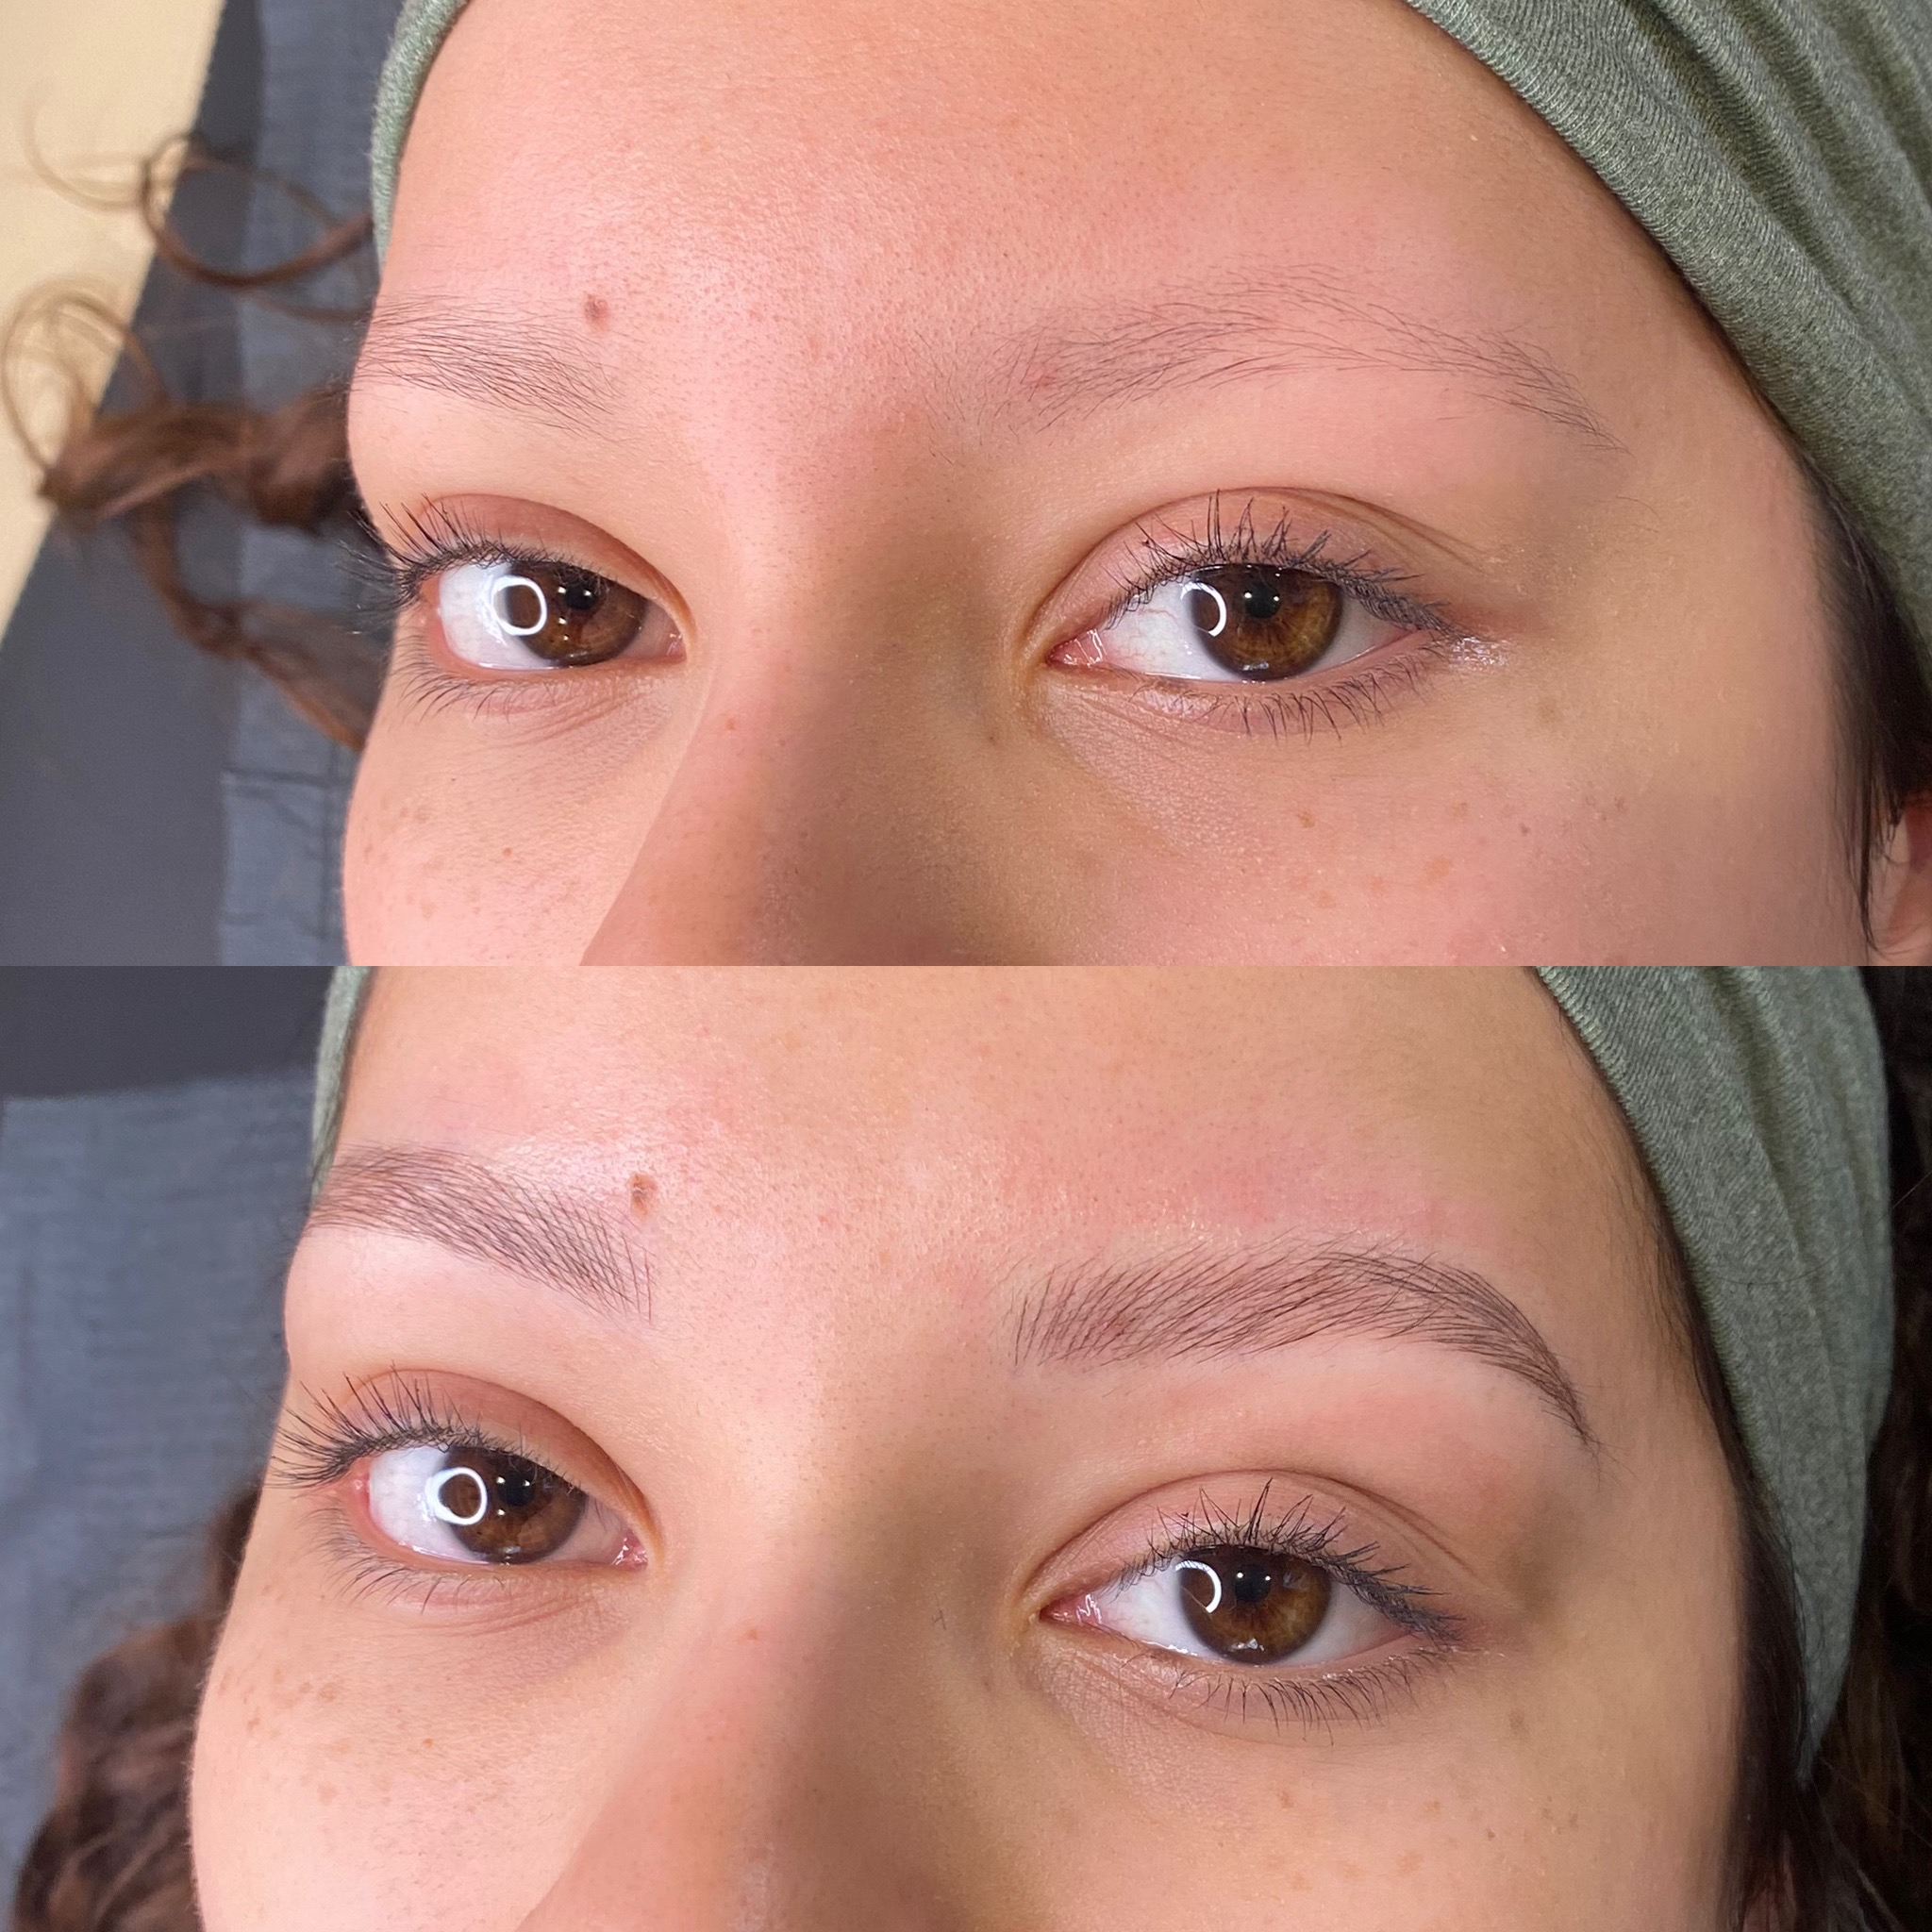 photo of eyebrows with microblading